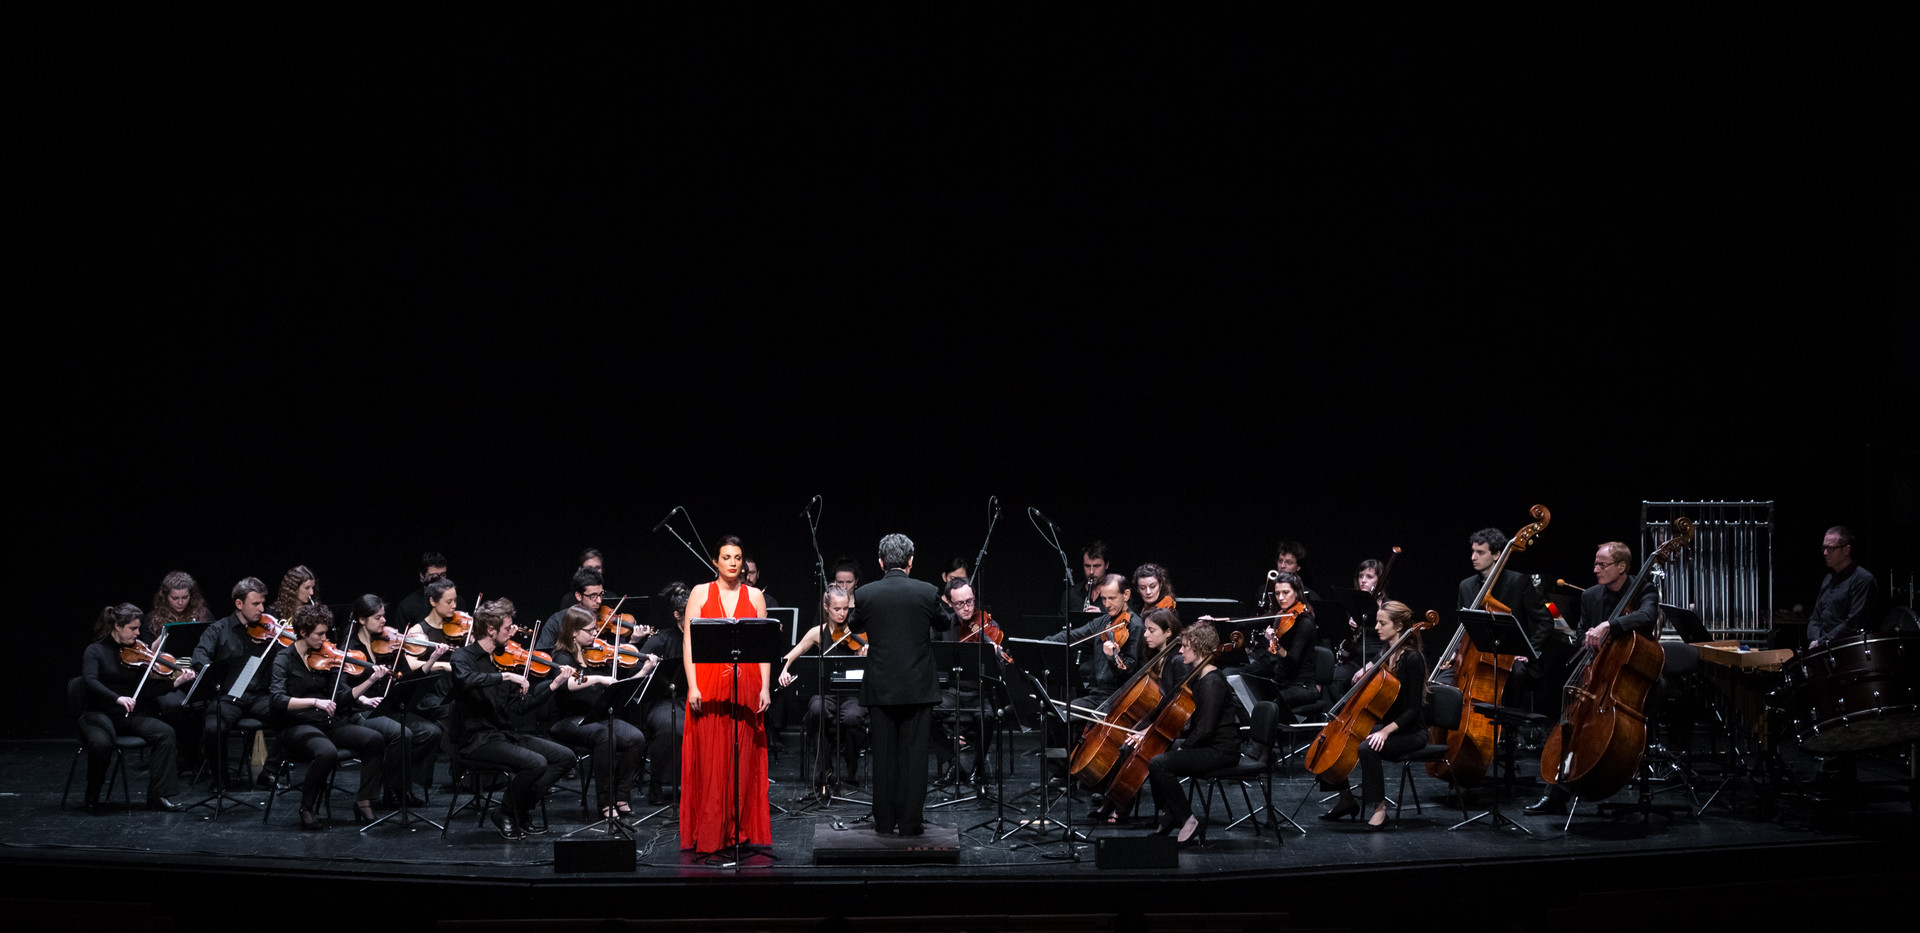 Concert with Archipel Festival with Ensemble Contrechamps directed by Pierre-André Valade